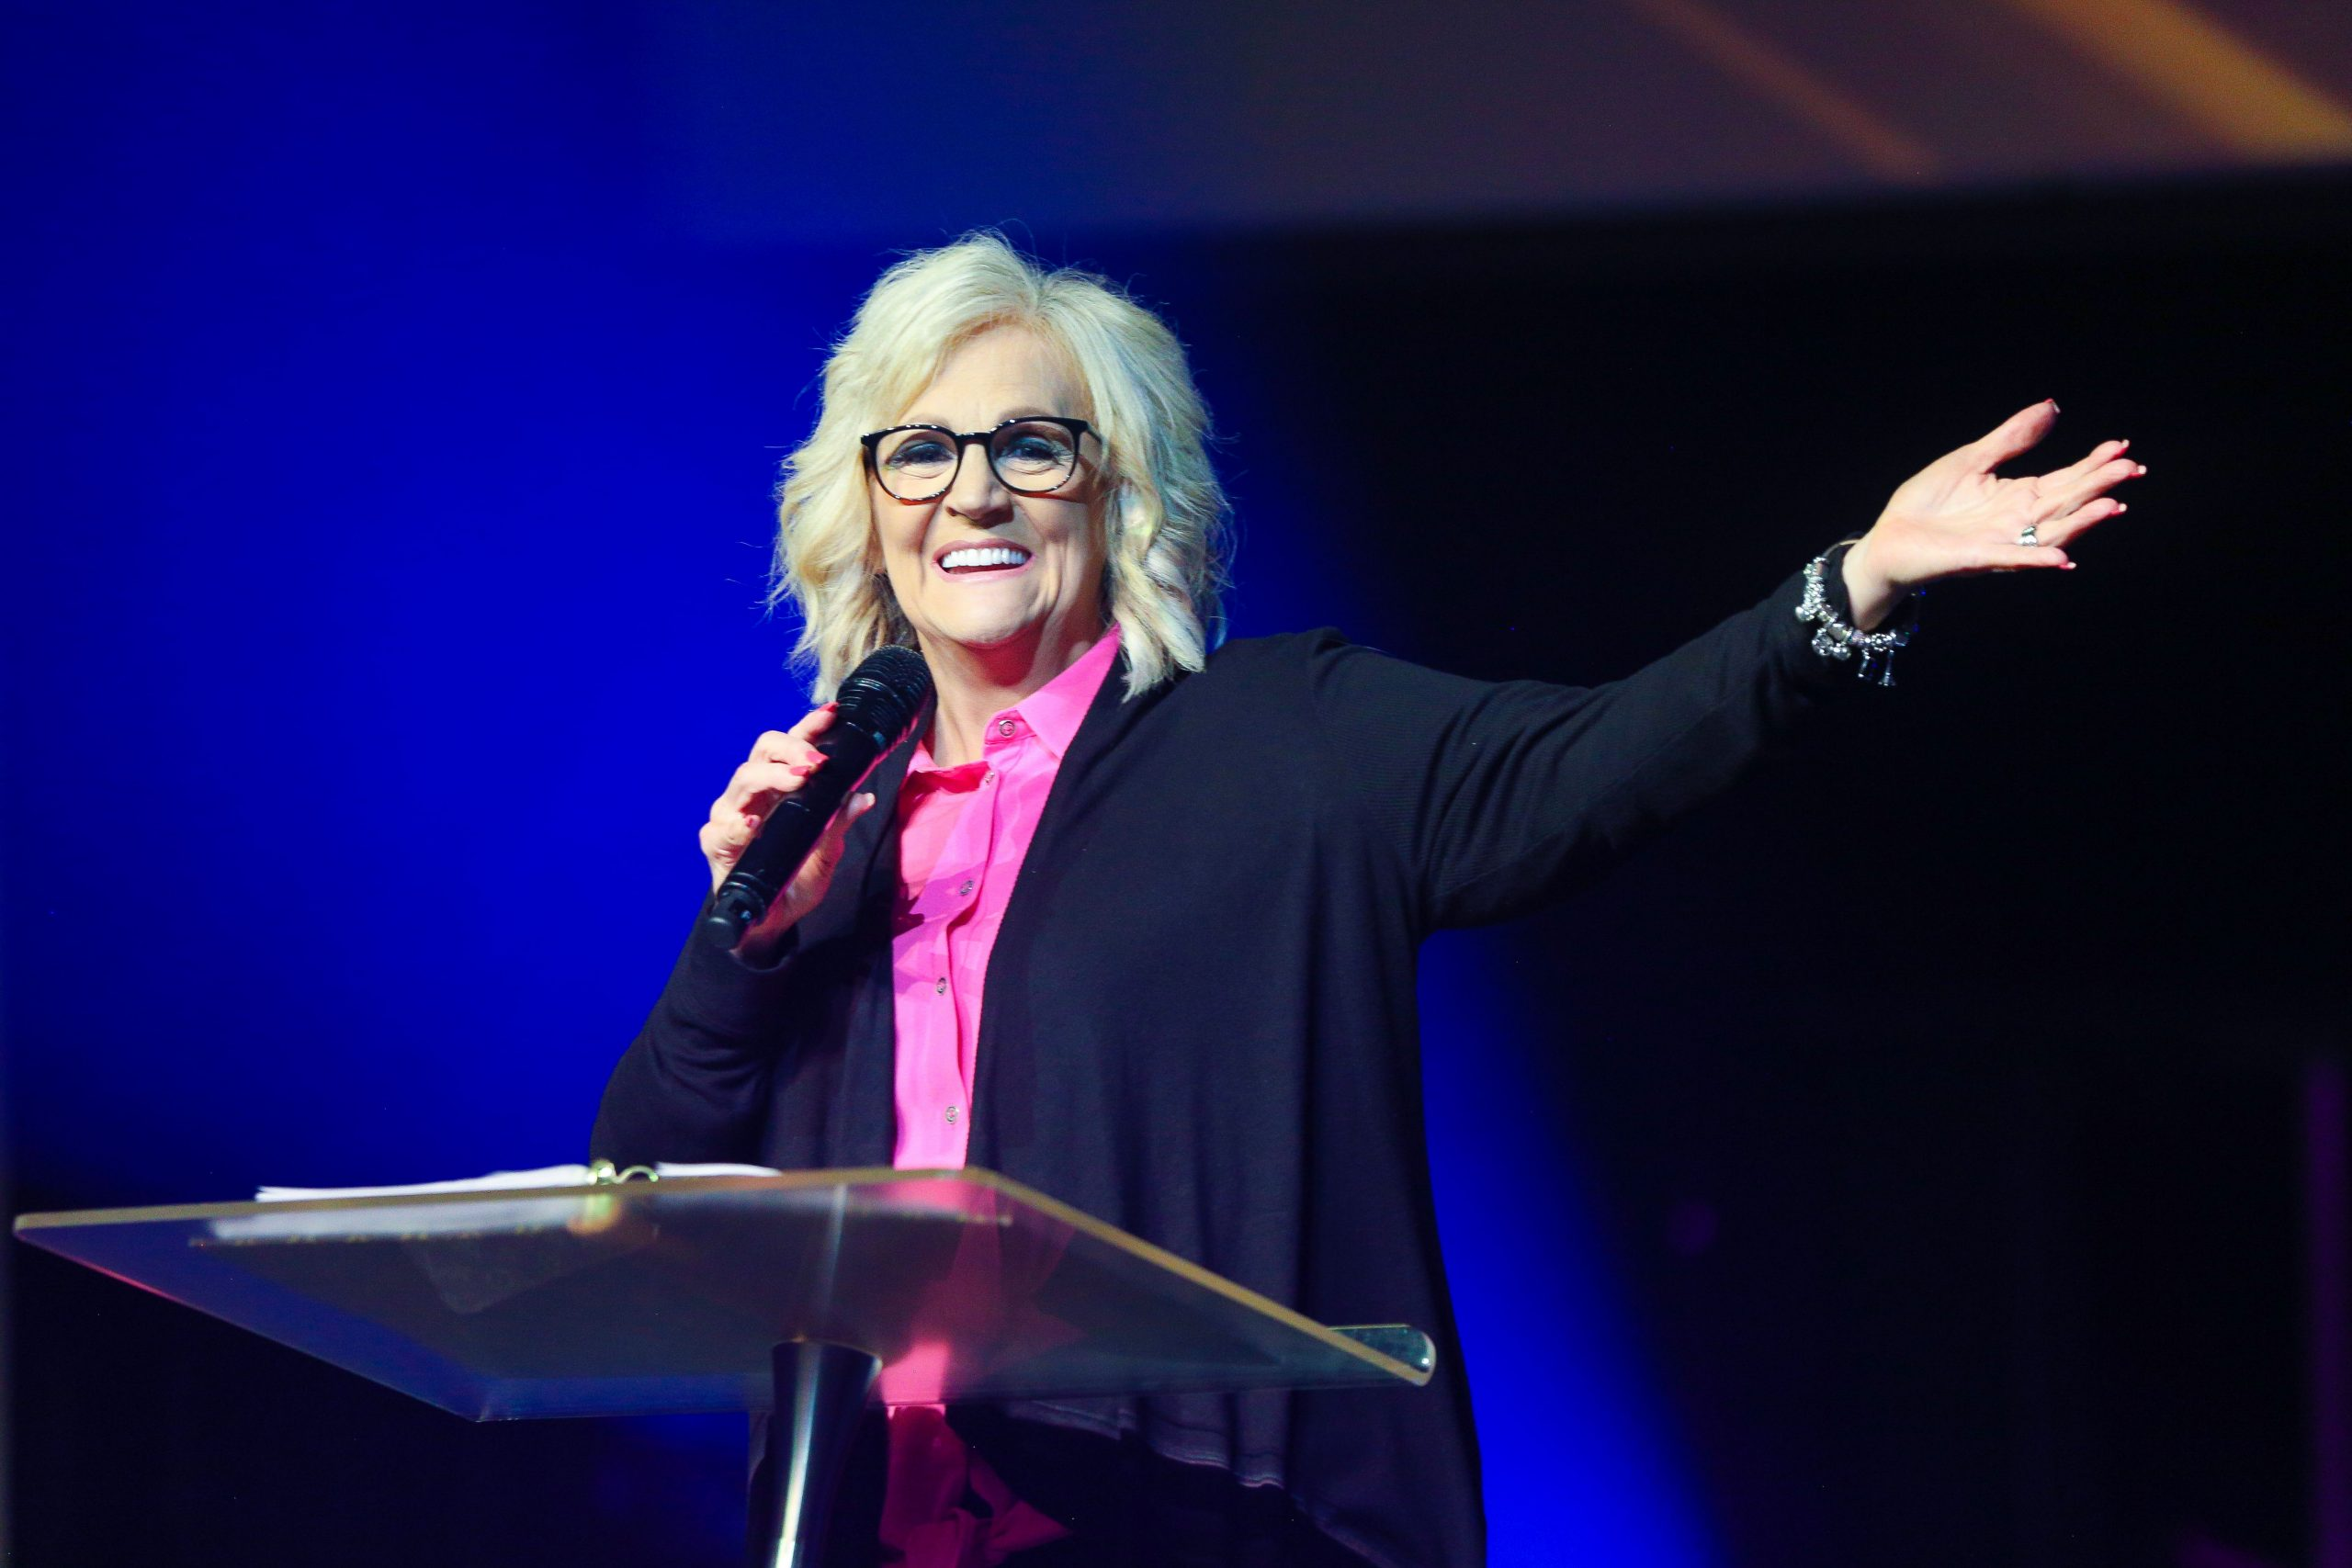 Latest sermon speaker featured image, typically Pastor Sheryl Brady or an associate Pastor of The Potter's House of North Dallas in Frisco, Texas